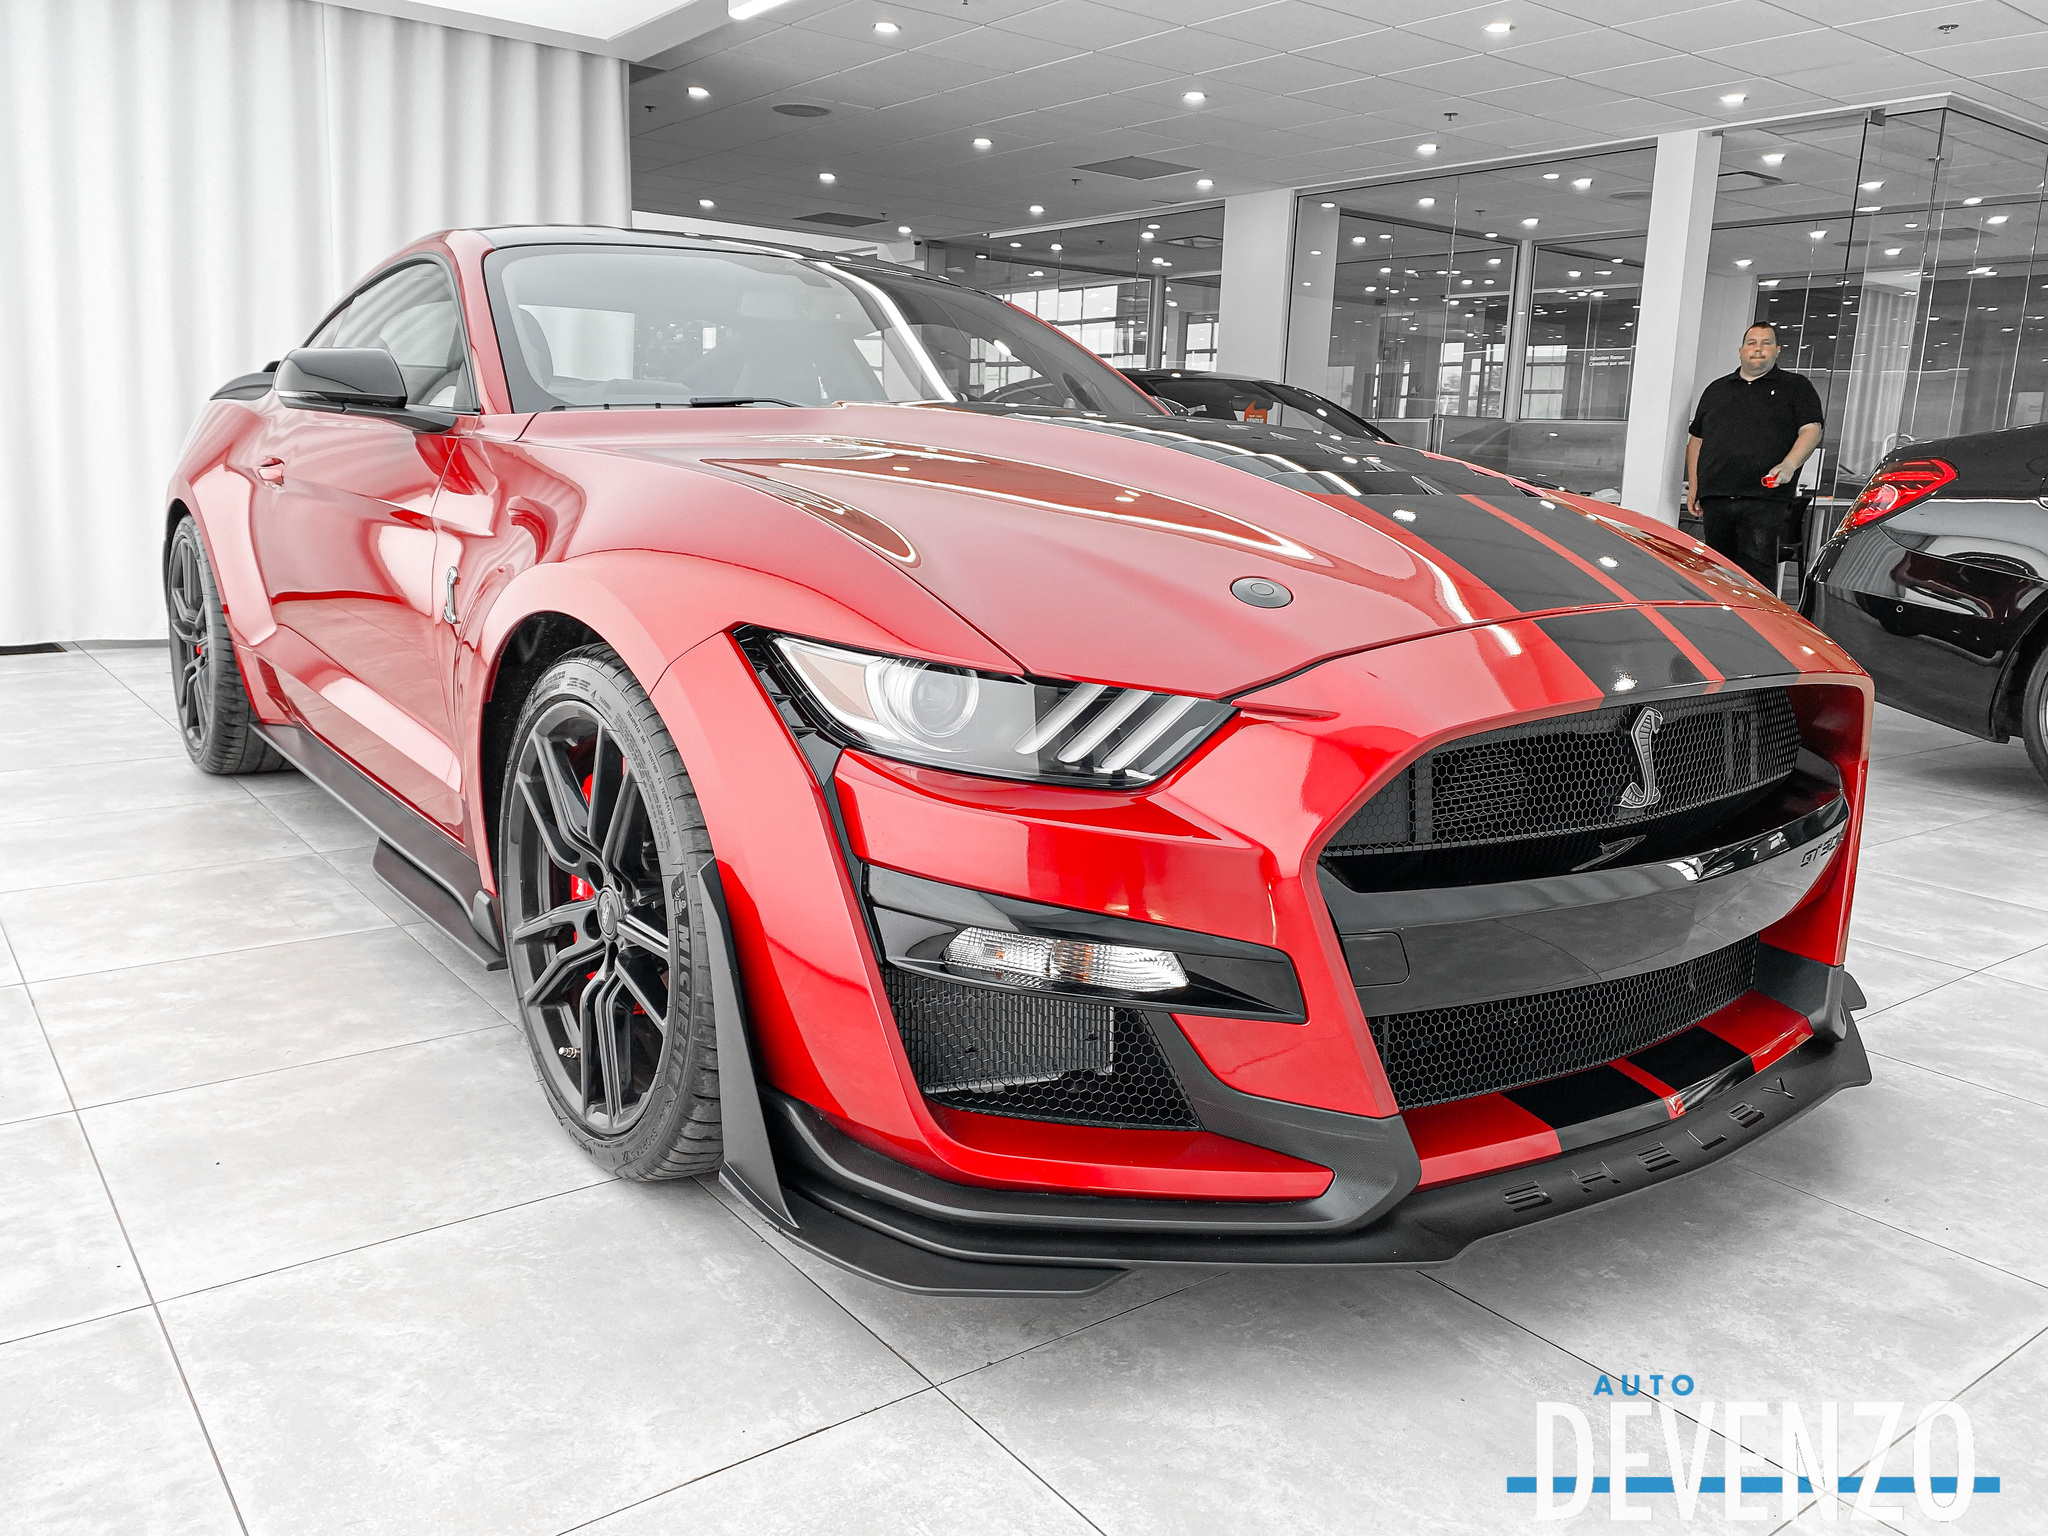 2020 Ford Mustang Shelby GT500 Fastback 760HP complet